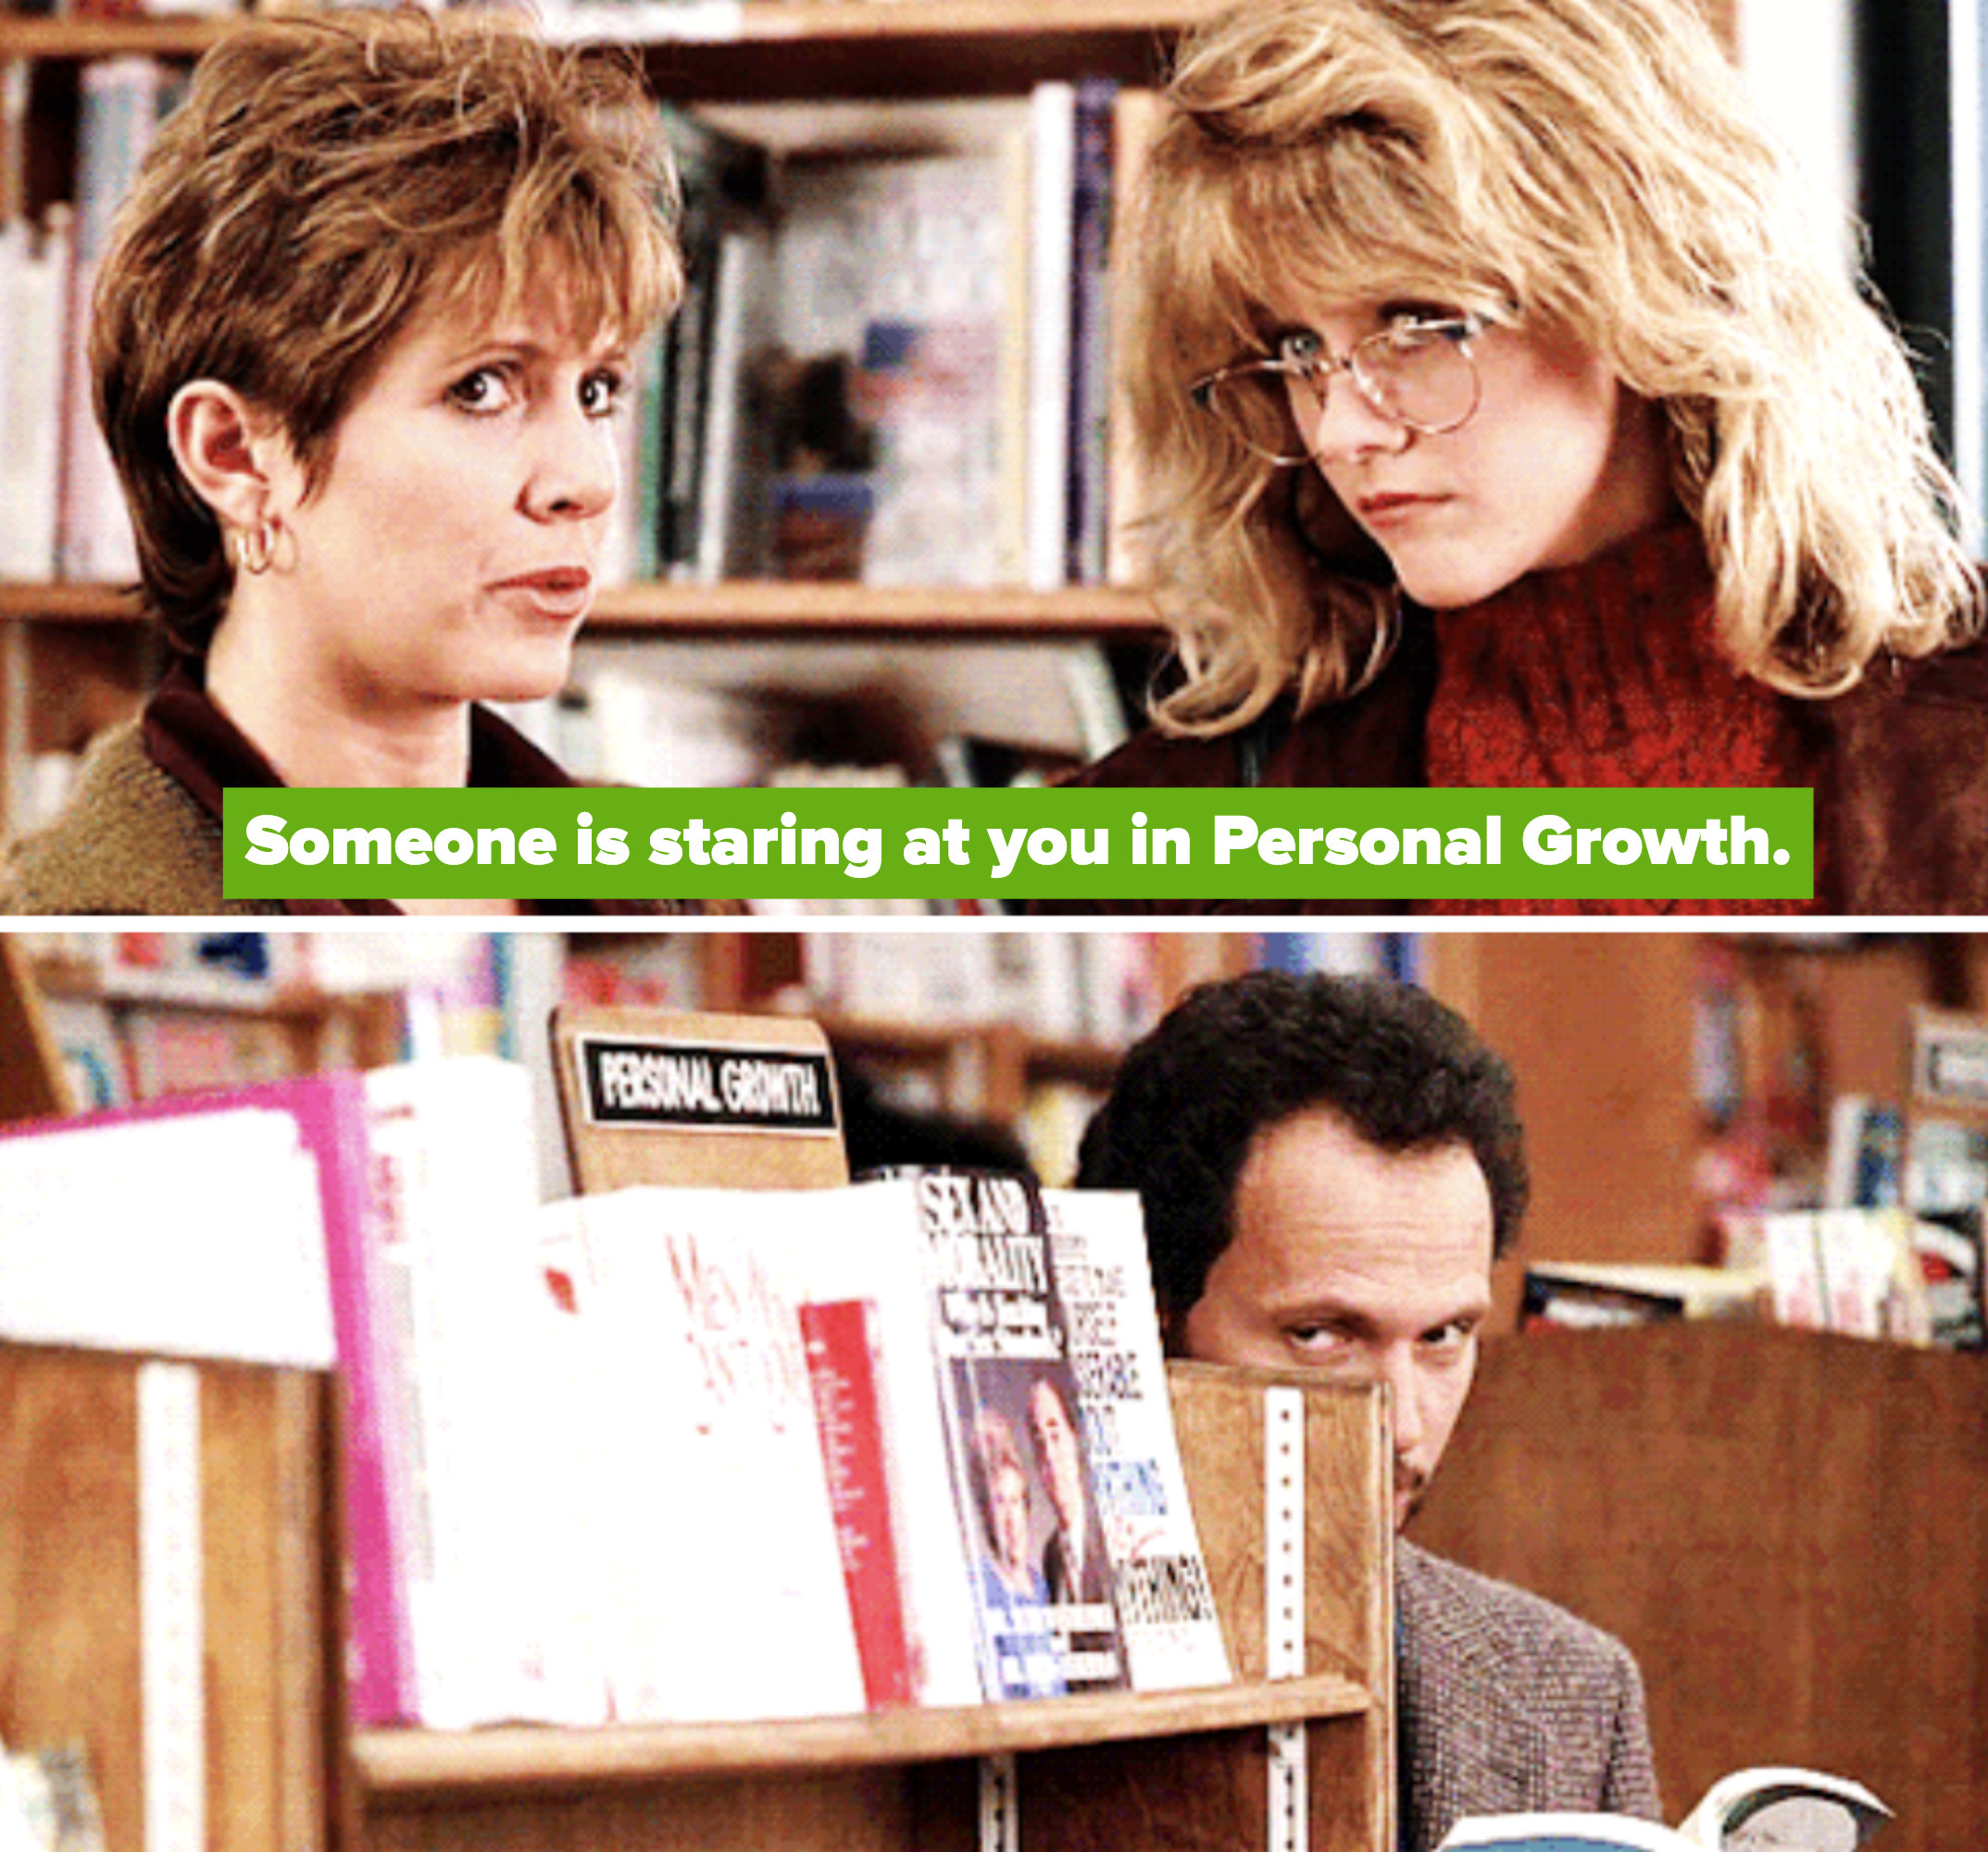 """Marie to Sally: """"Someone is staring at you in Personal Growth"""""""